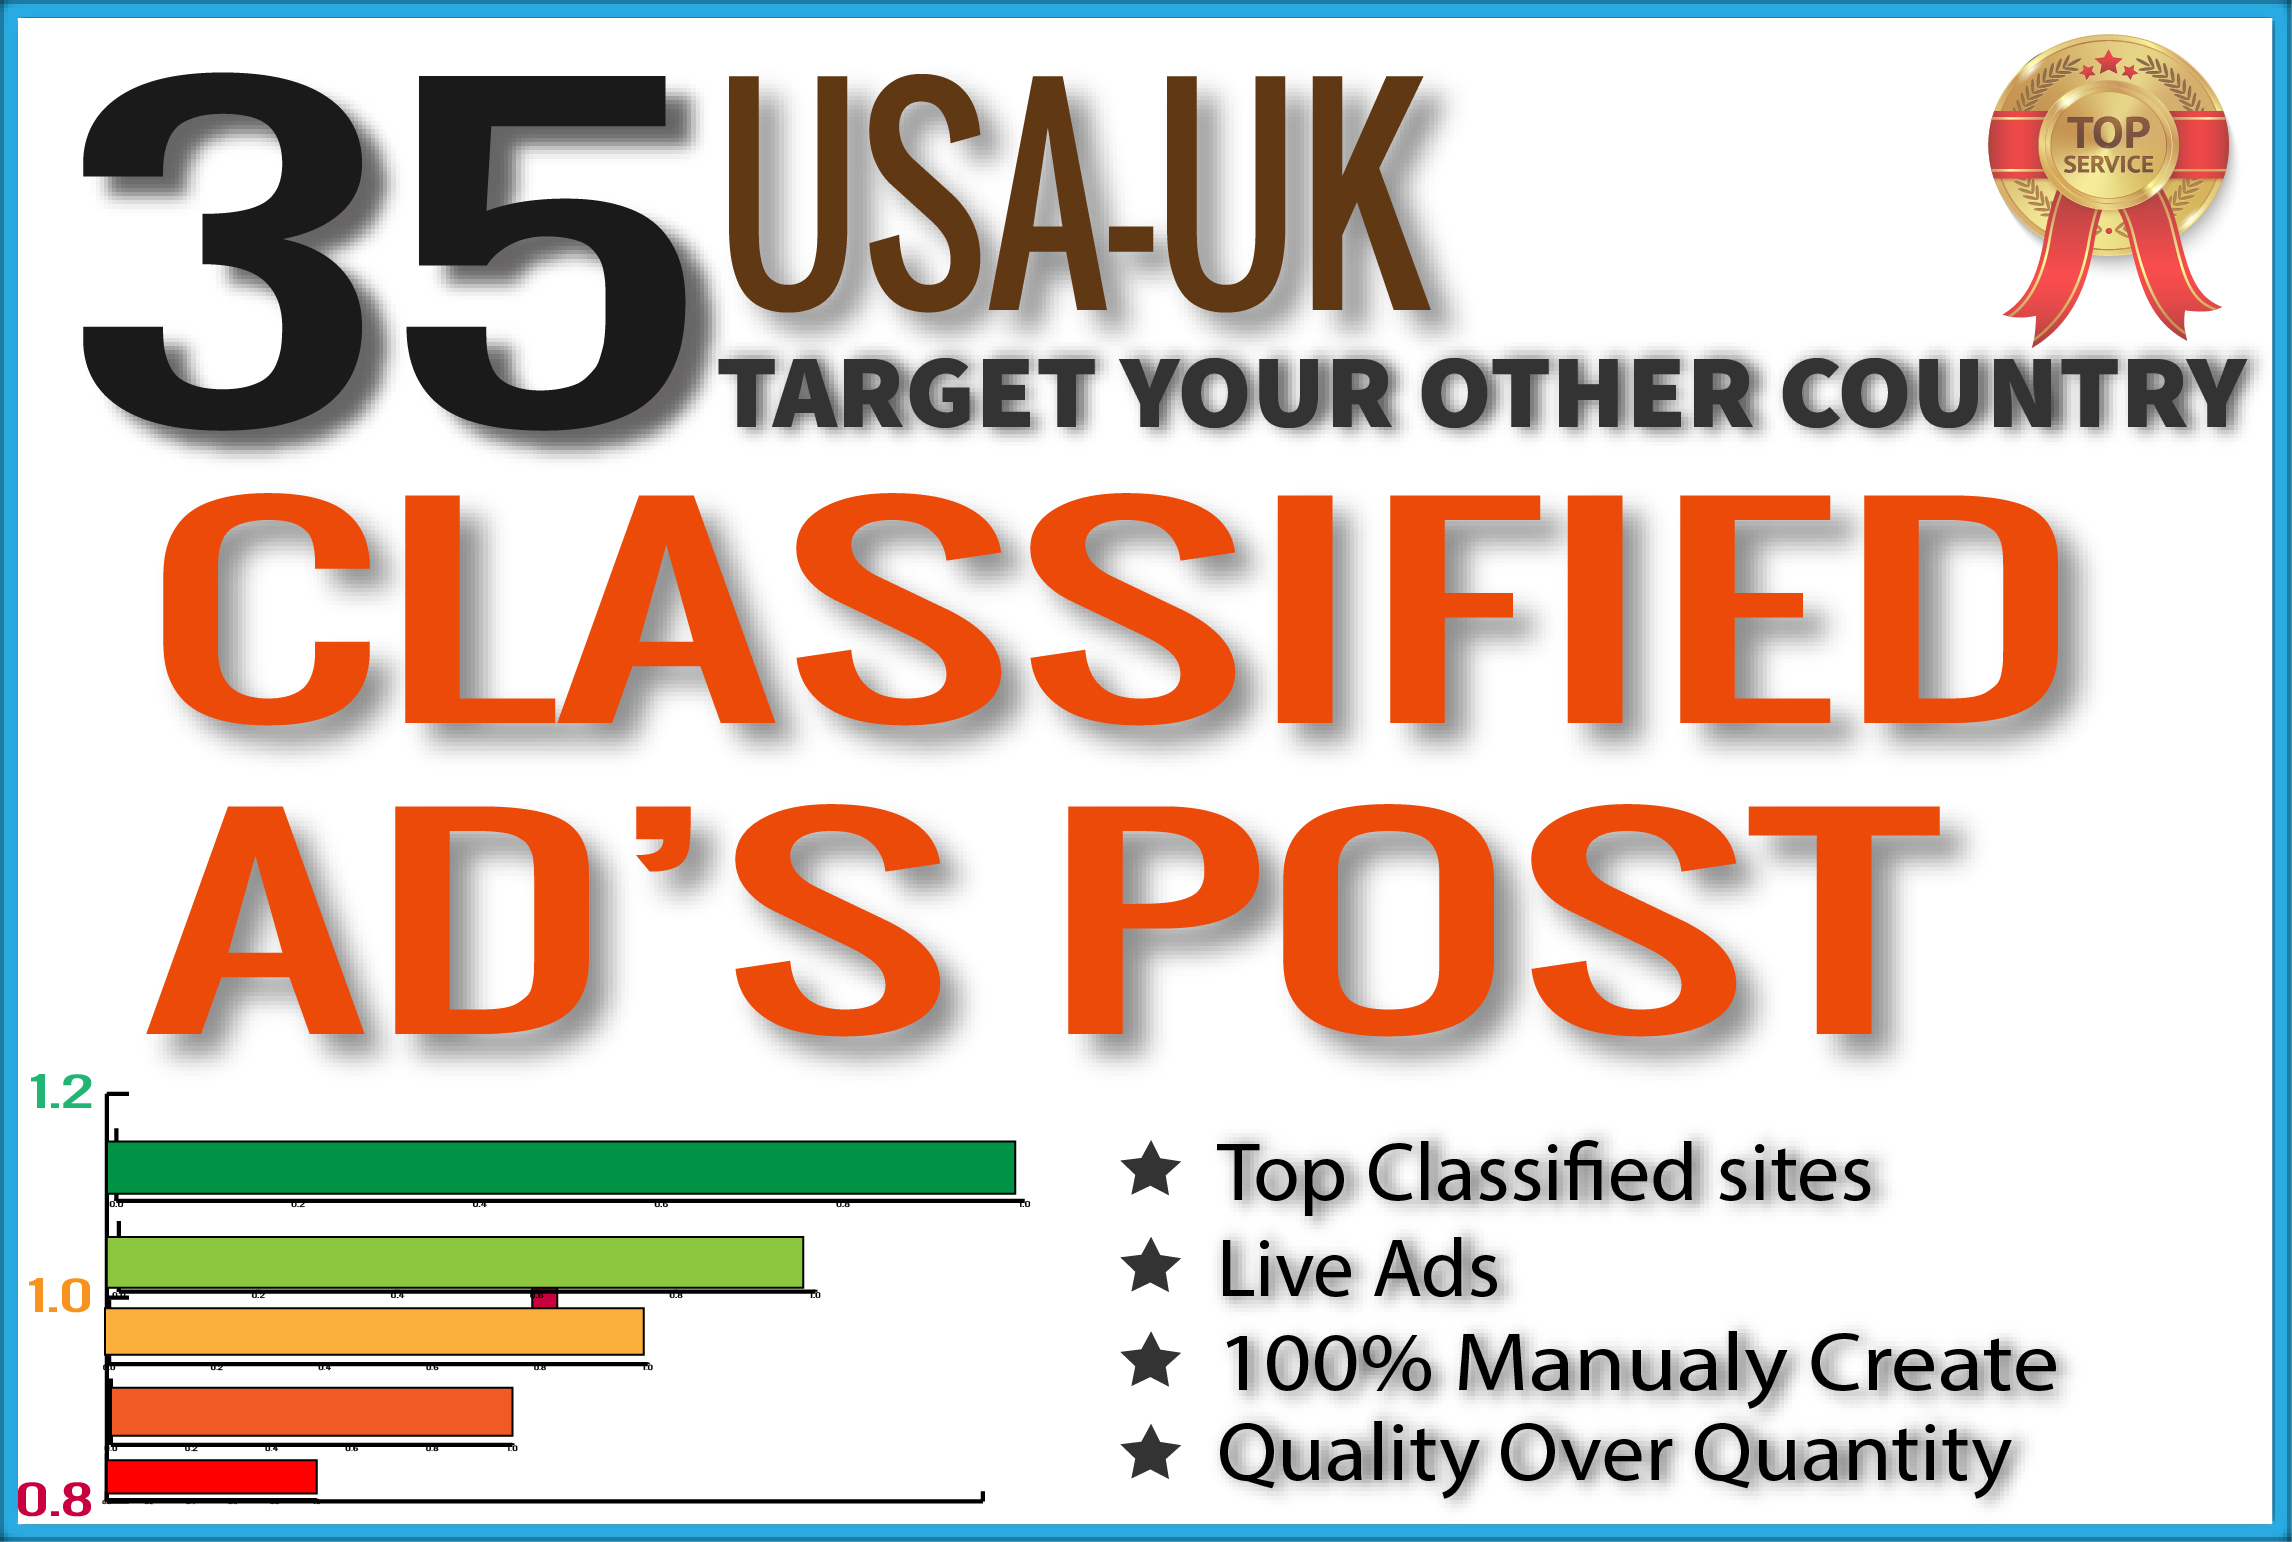 Post in Classified ad for the USA-UK on the High-Rank website